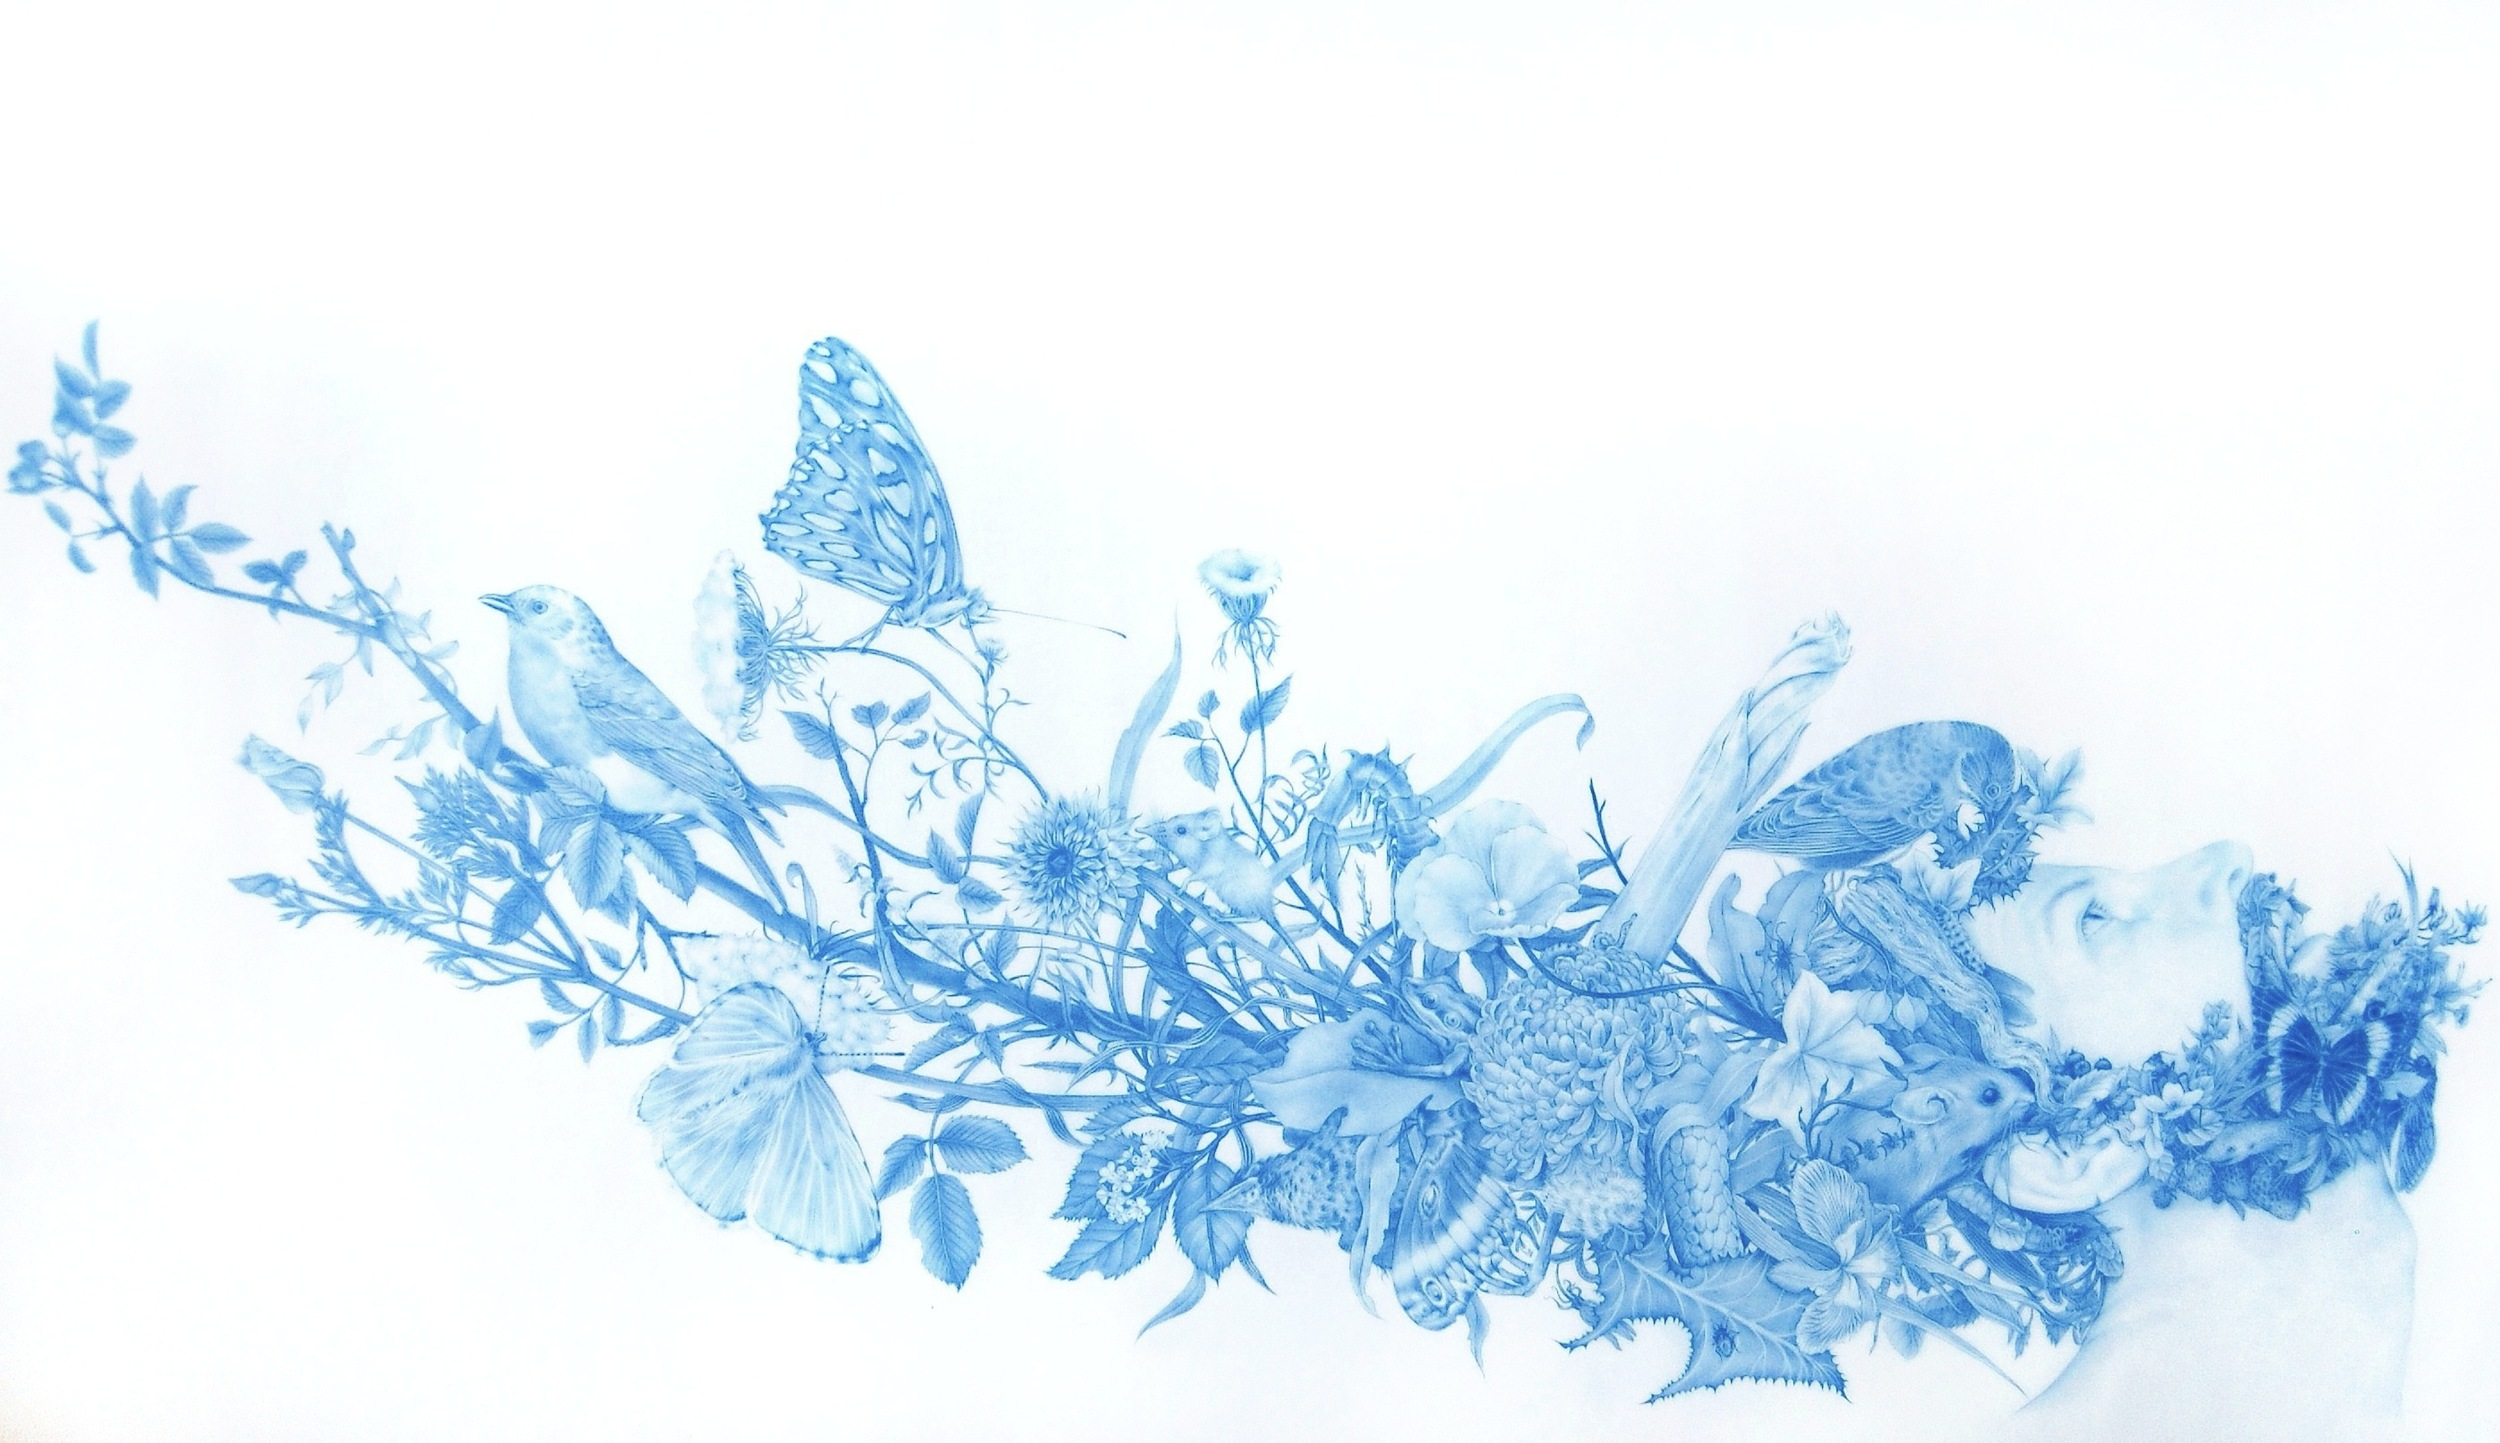 ZACHARI LOGAN, Wild Man 4, 2015 blue pencil on mylar, 21 x 35 inches